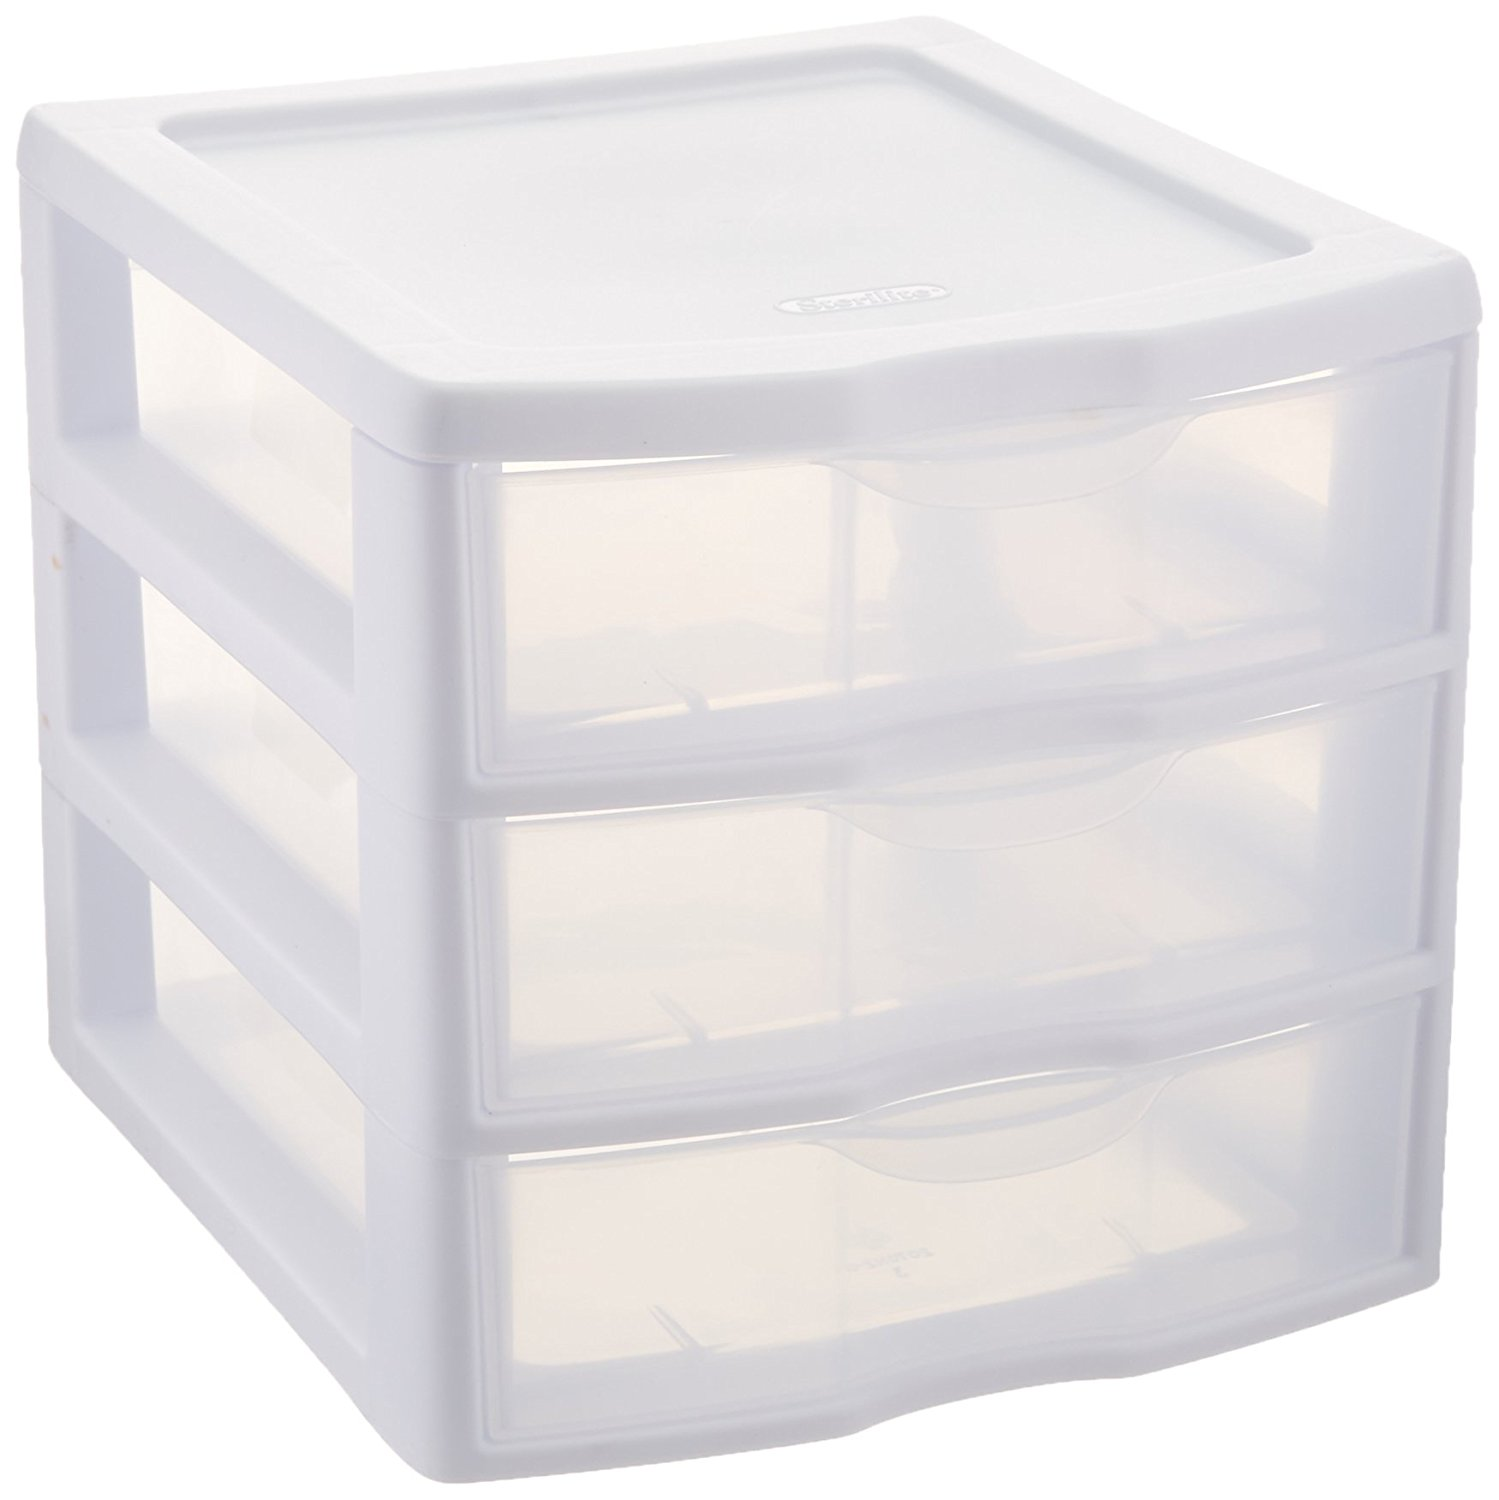 plastic storage drawers amazon.com: sterilite clearview 3 storage drawer organizer: home u0026 kitchen NNUHMFF